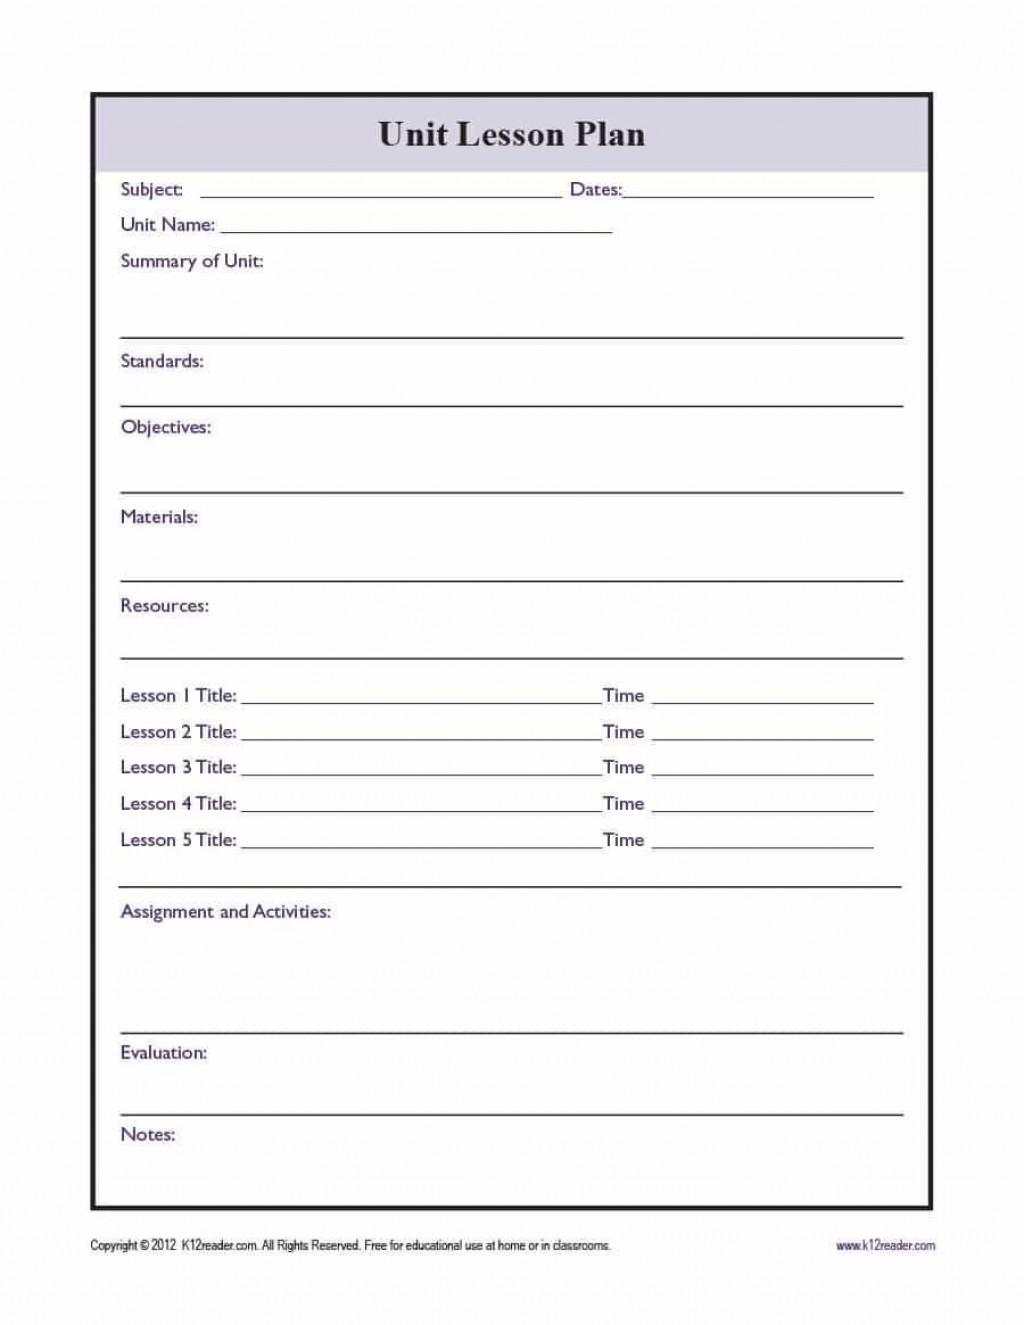 003 Exceptional Unit Lesson Plan Template High Def  Templates Thematic Example Mini FormatLarge